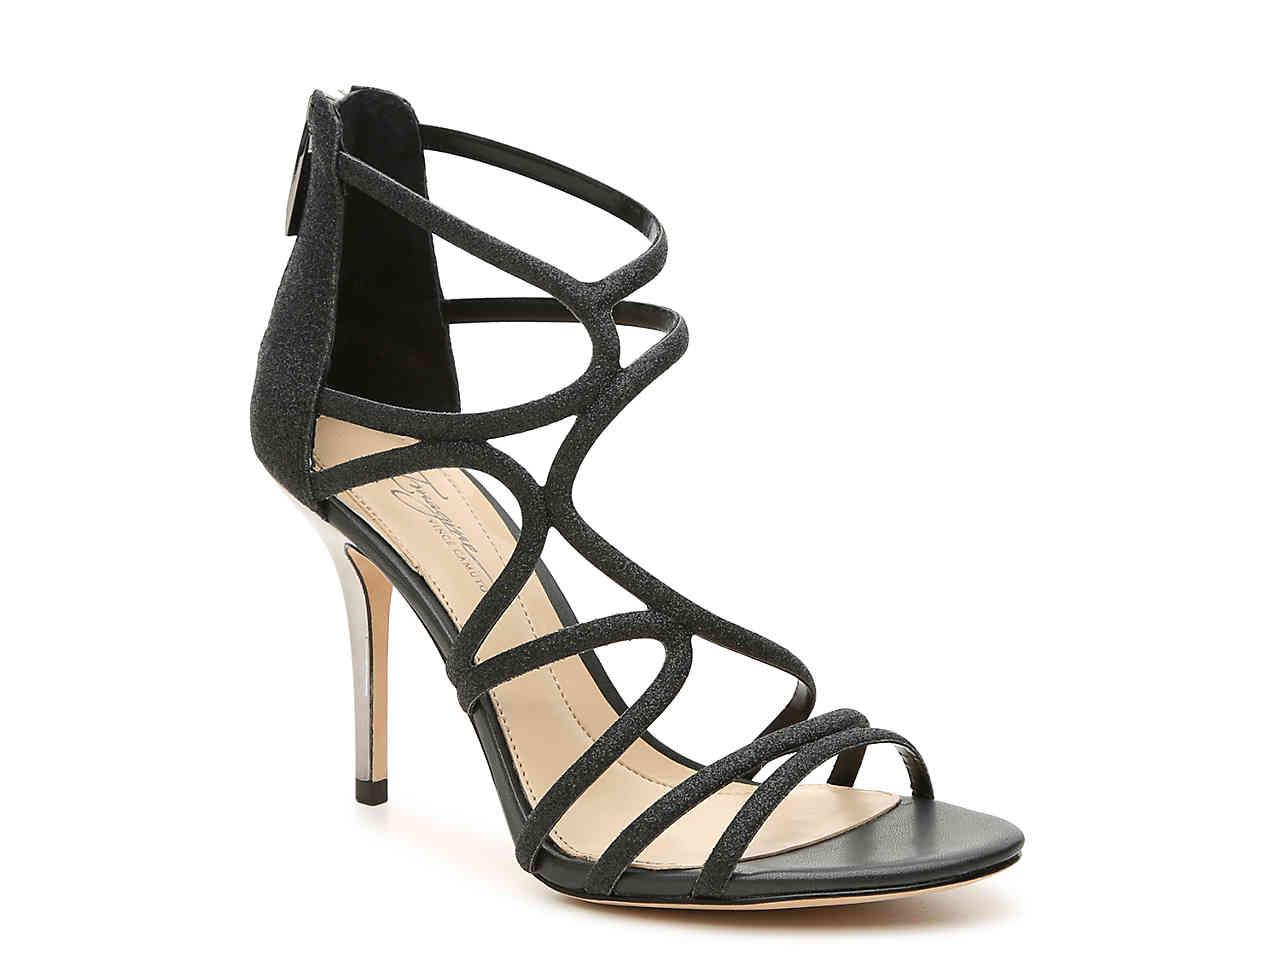 864a2fc1bfc Lyst - Imagine Vince Camuto Ranee Sandal in Black